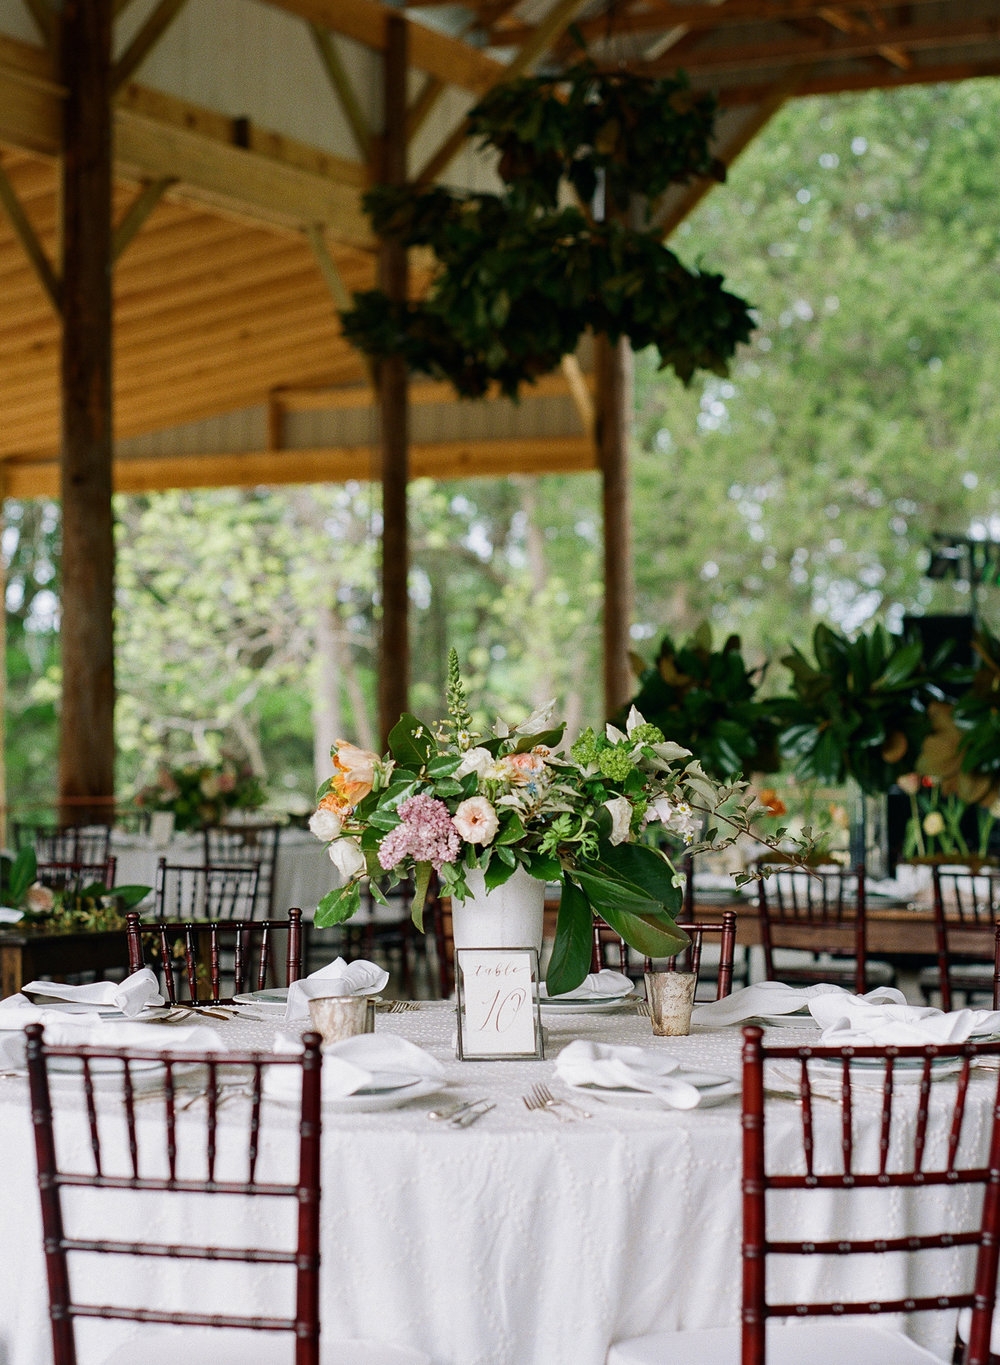 Southern Wedding at the Oaks in Madison, Georgia by Carrie Joy Photography-1034.jpg